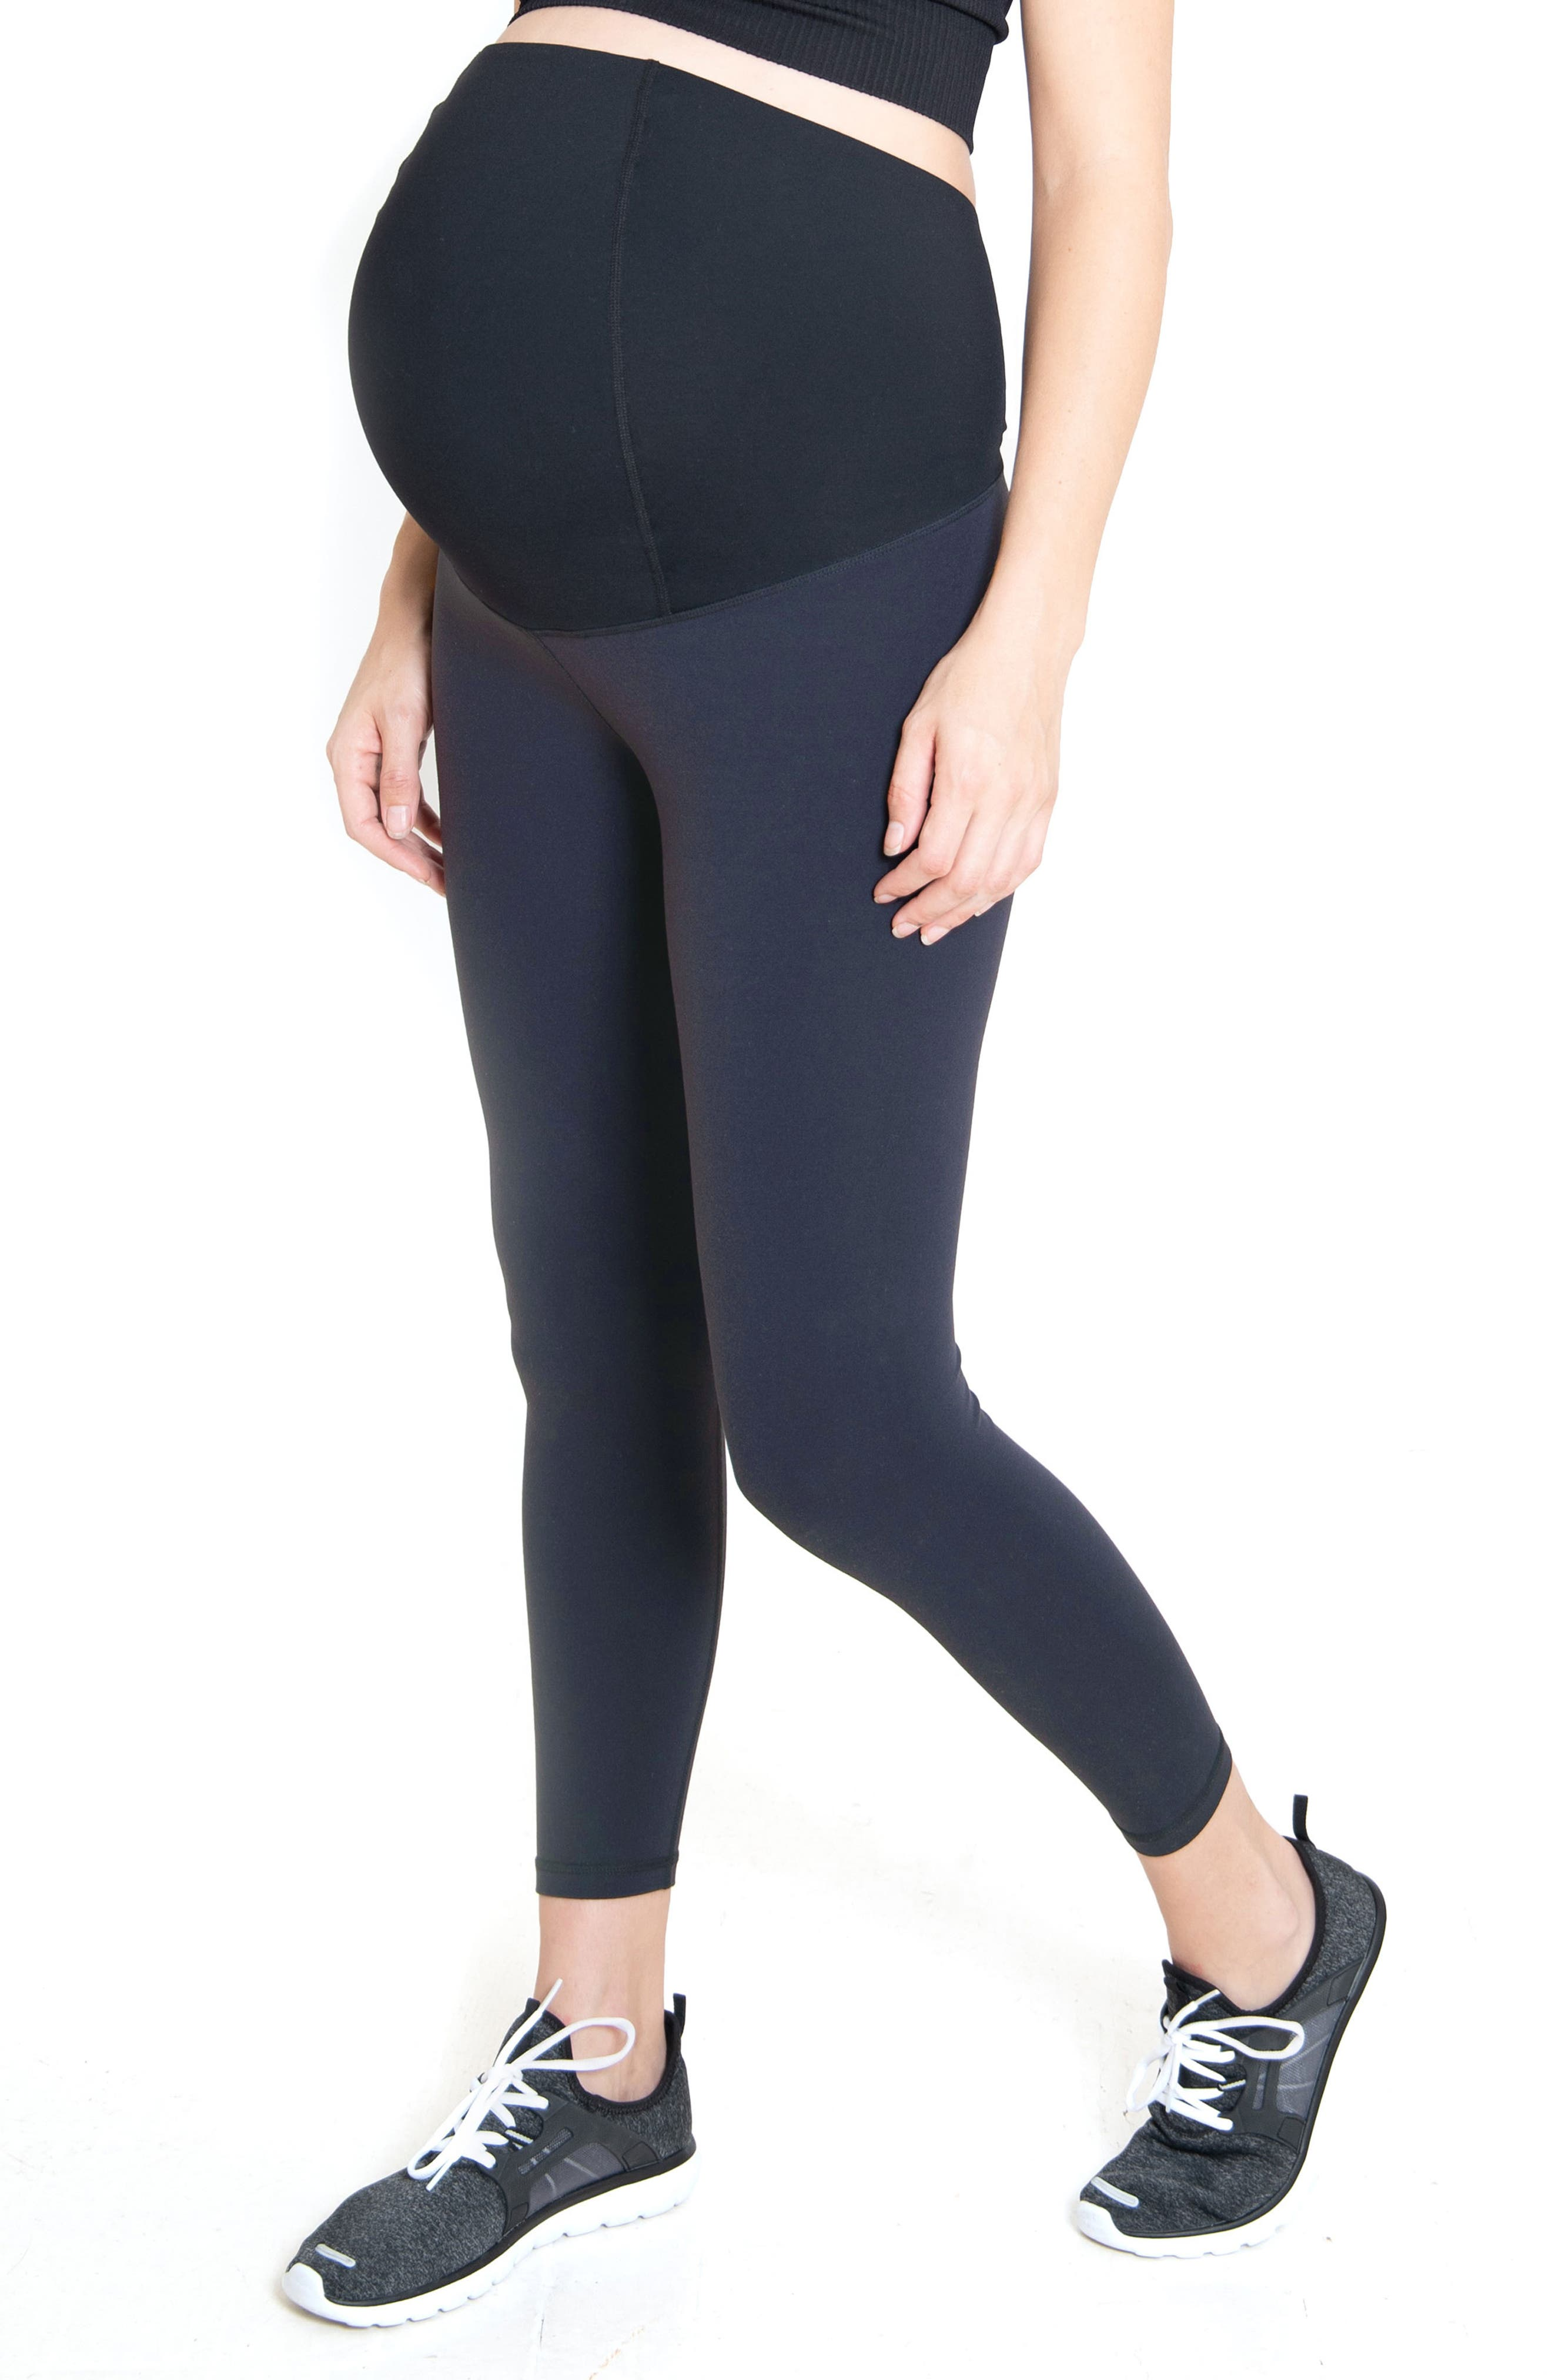 Ingrid & IsabelR Women's Ingrid & Isabel Crossover Waist 7/8 Active Maternity Leggings,  X-Small - Metallic